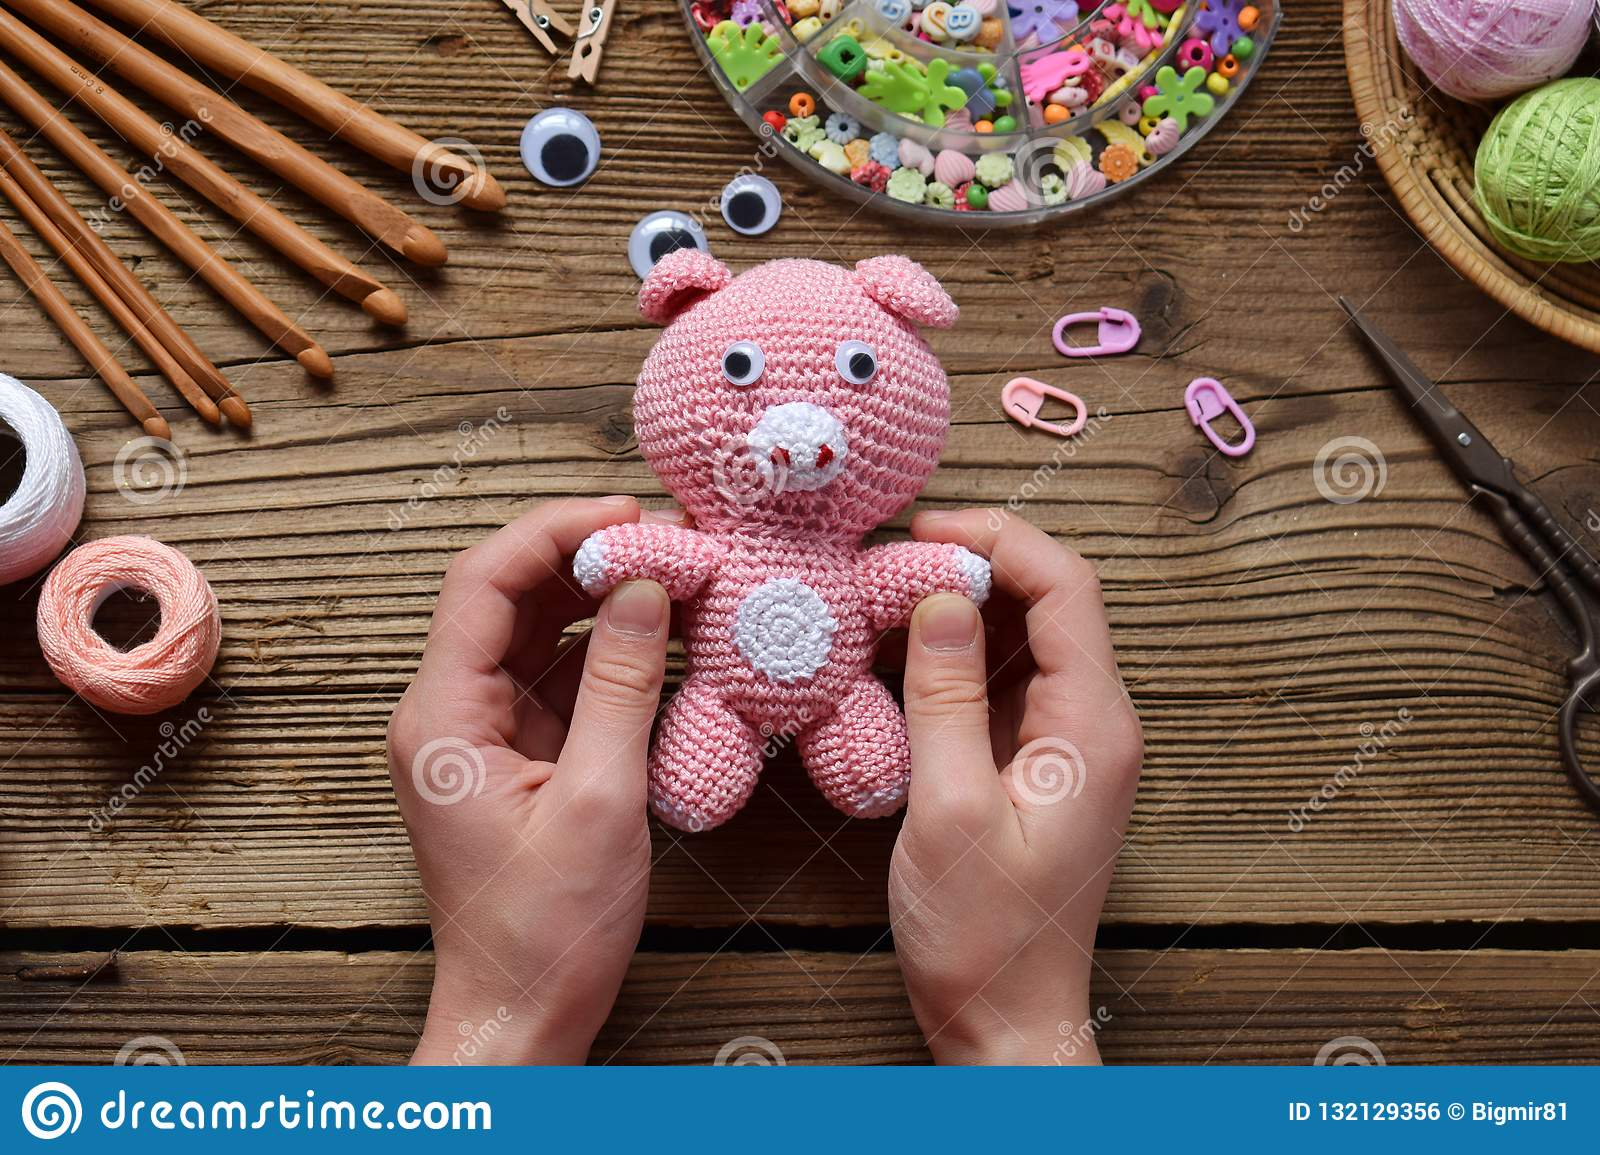 Pink Pig Crochet Toy For Child On Table Threads Needles Hook